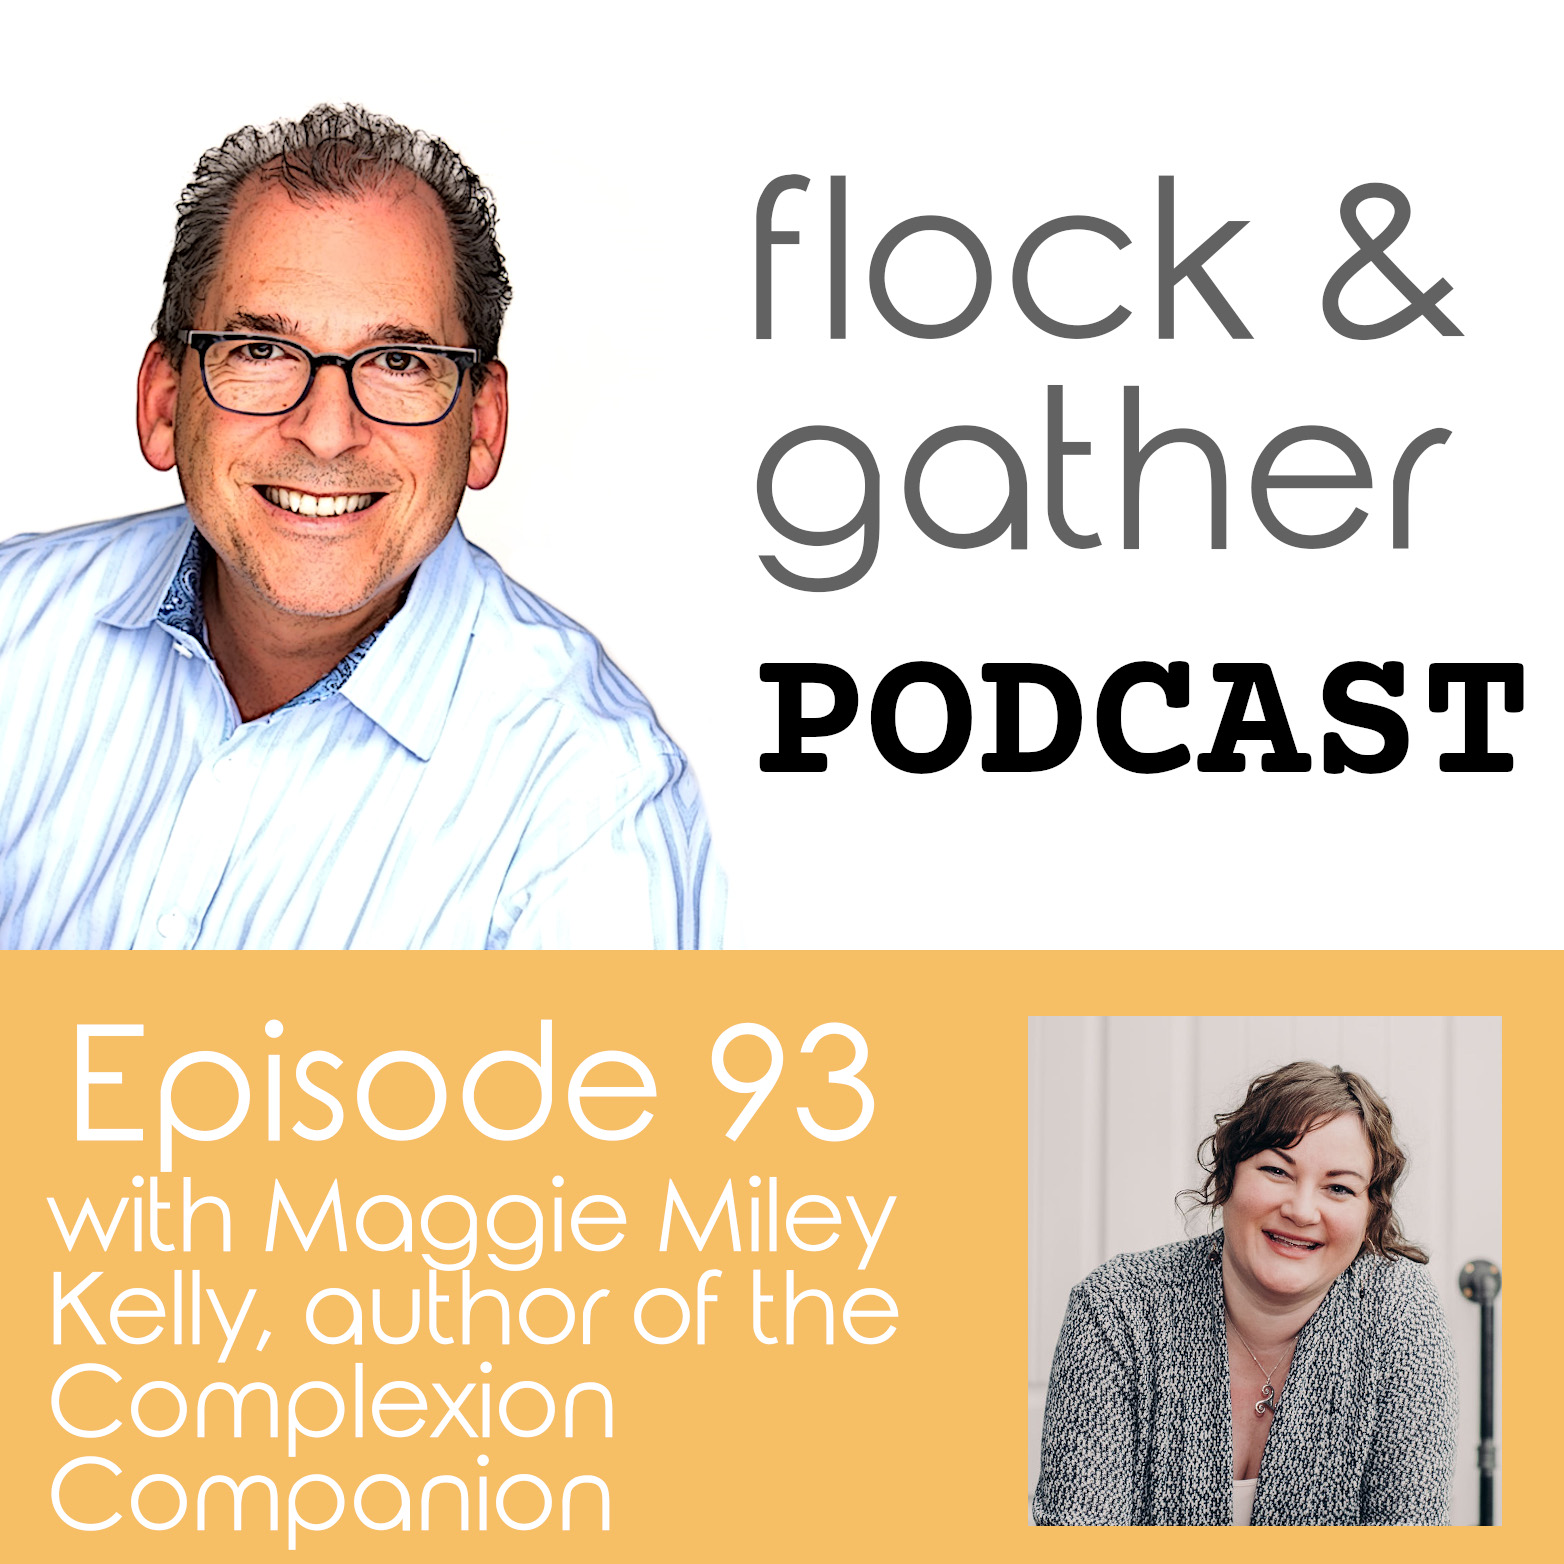 Flock and Gather Podcast.  Episode 93 with Maggie Miley Kelly - author of the Complexion Companion